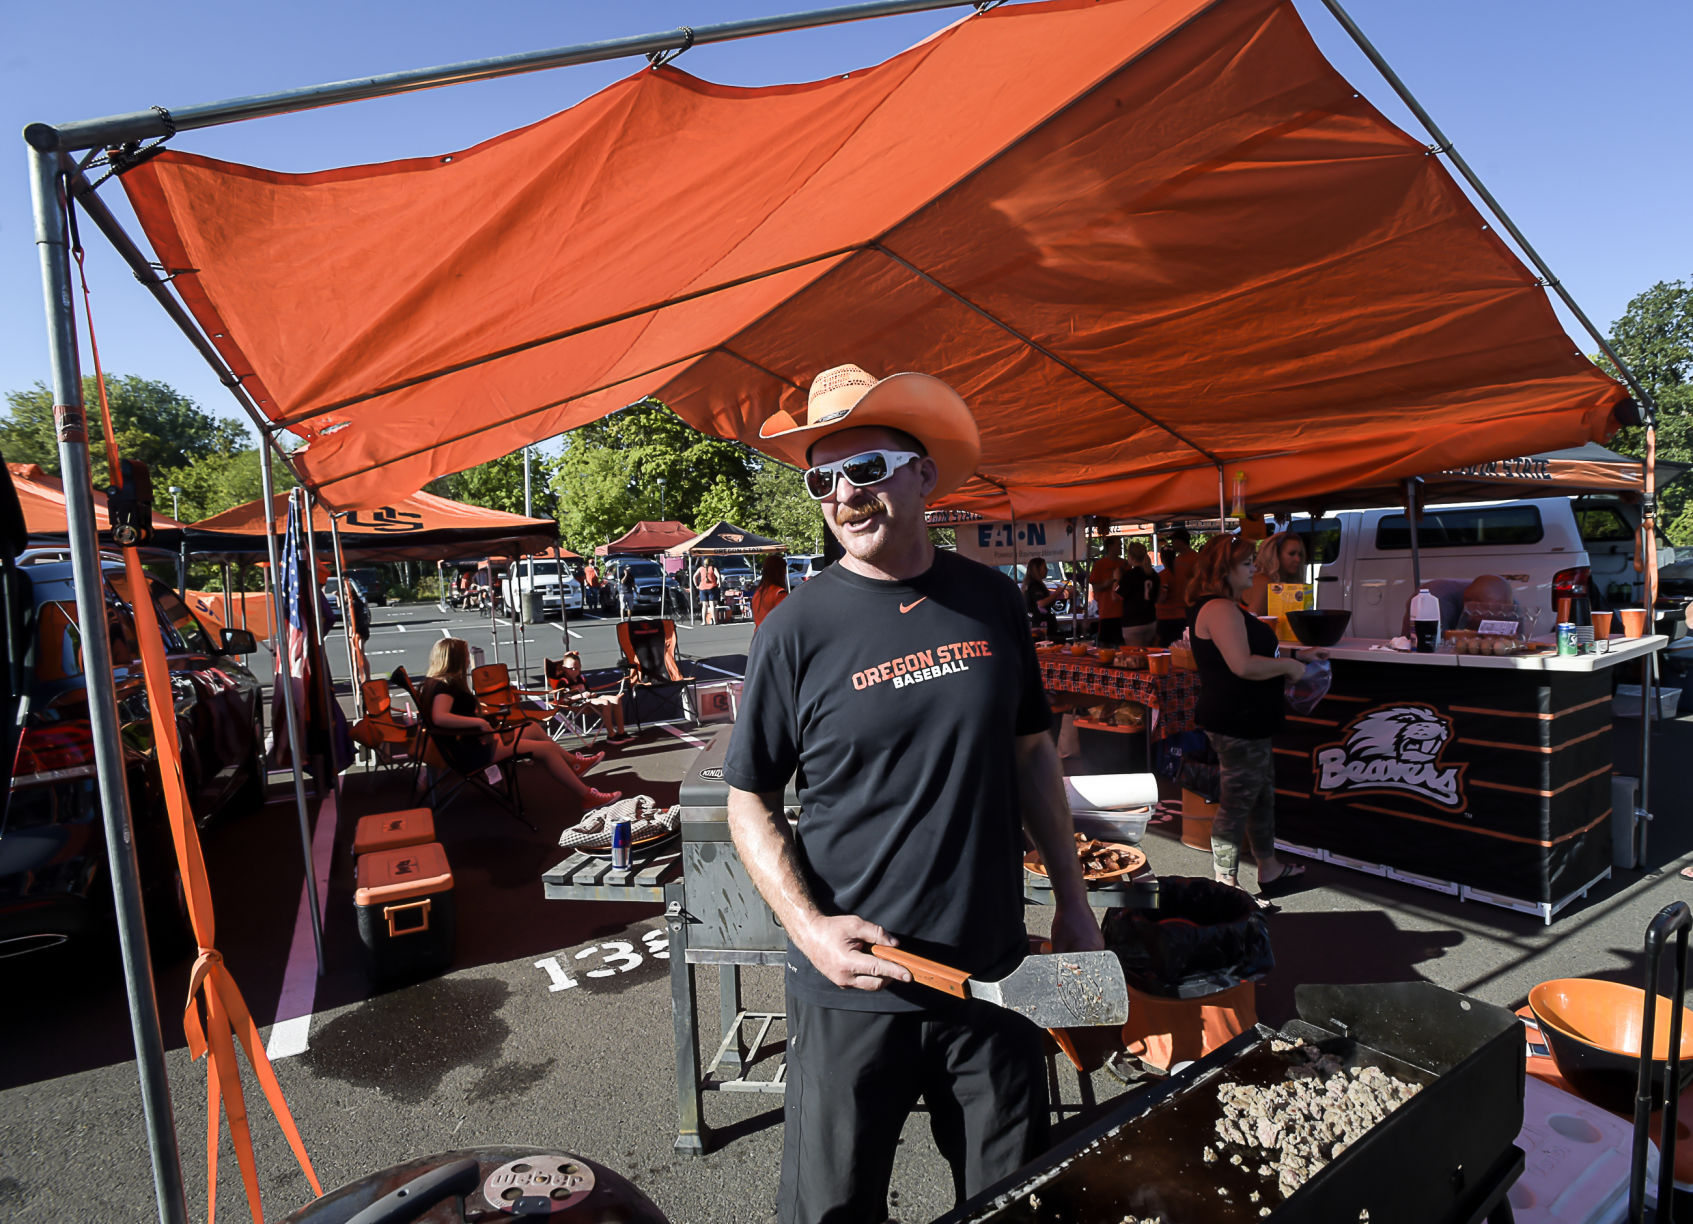 OSU Tailgating 01 & Beaver fans show up early to tailgate and beat the heat   Local ...